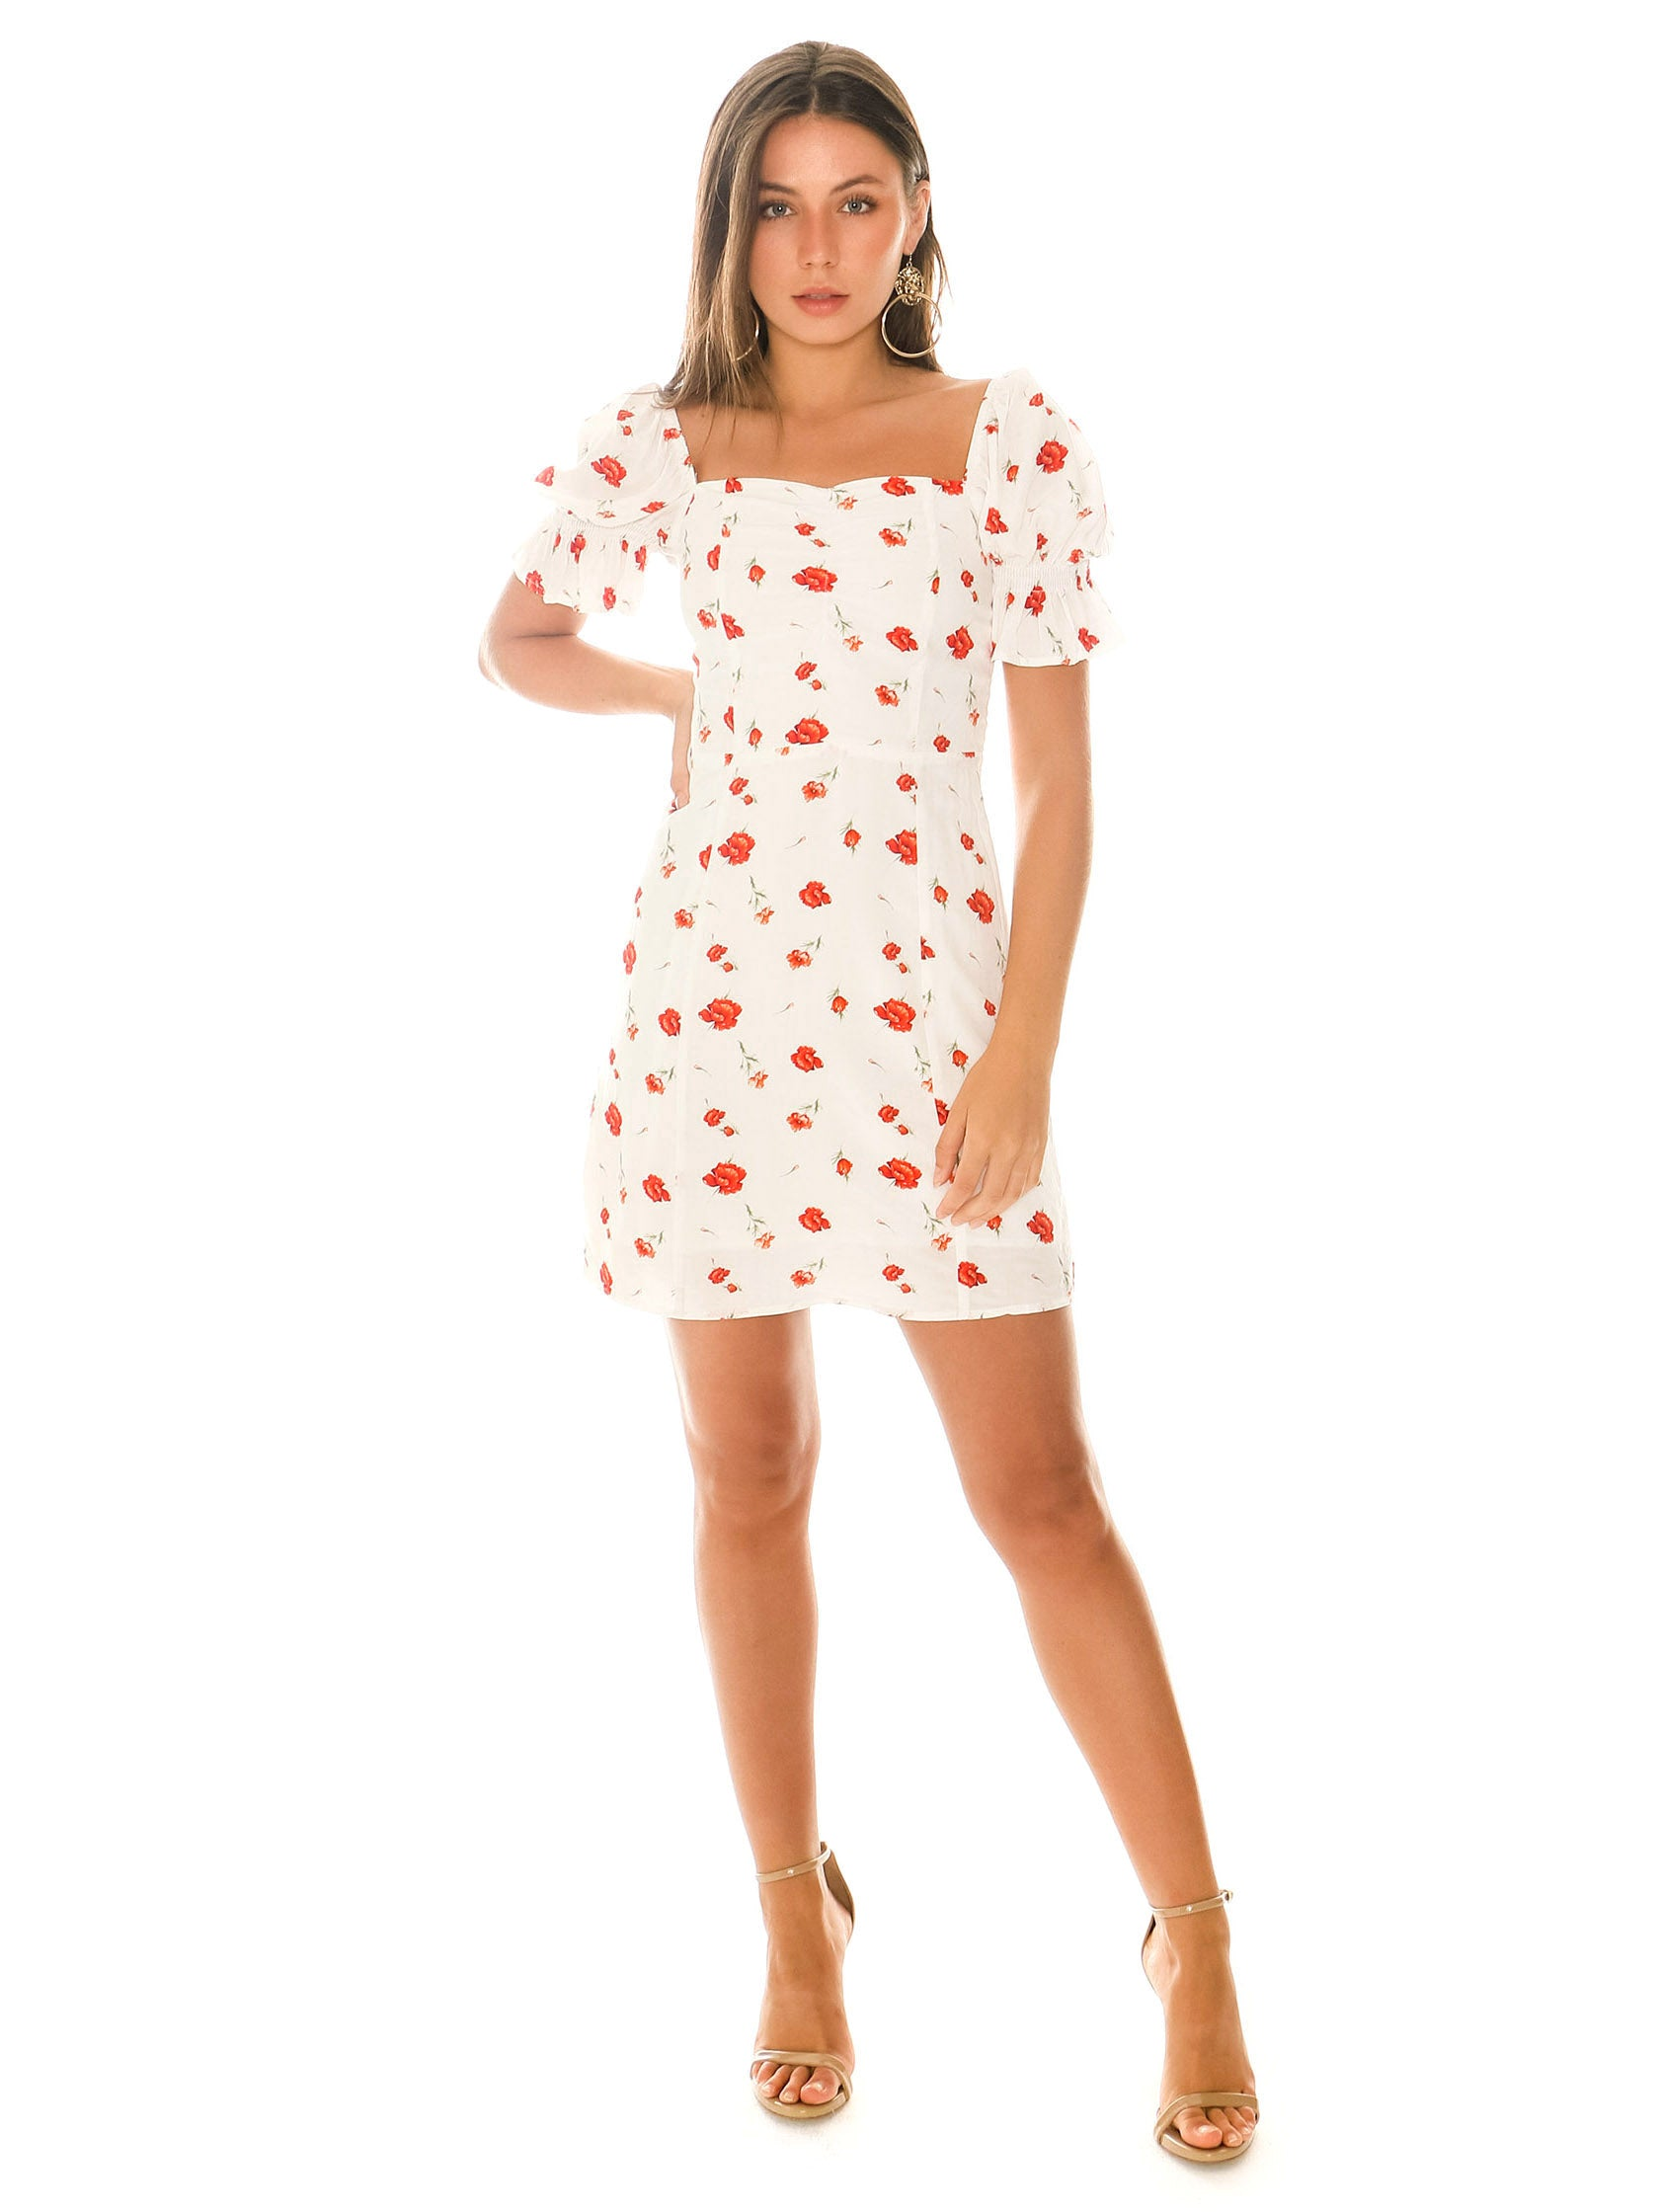 Girl outfit in a dress rental from Charlie Holiday called Valentine Floral Mini Dress